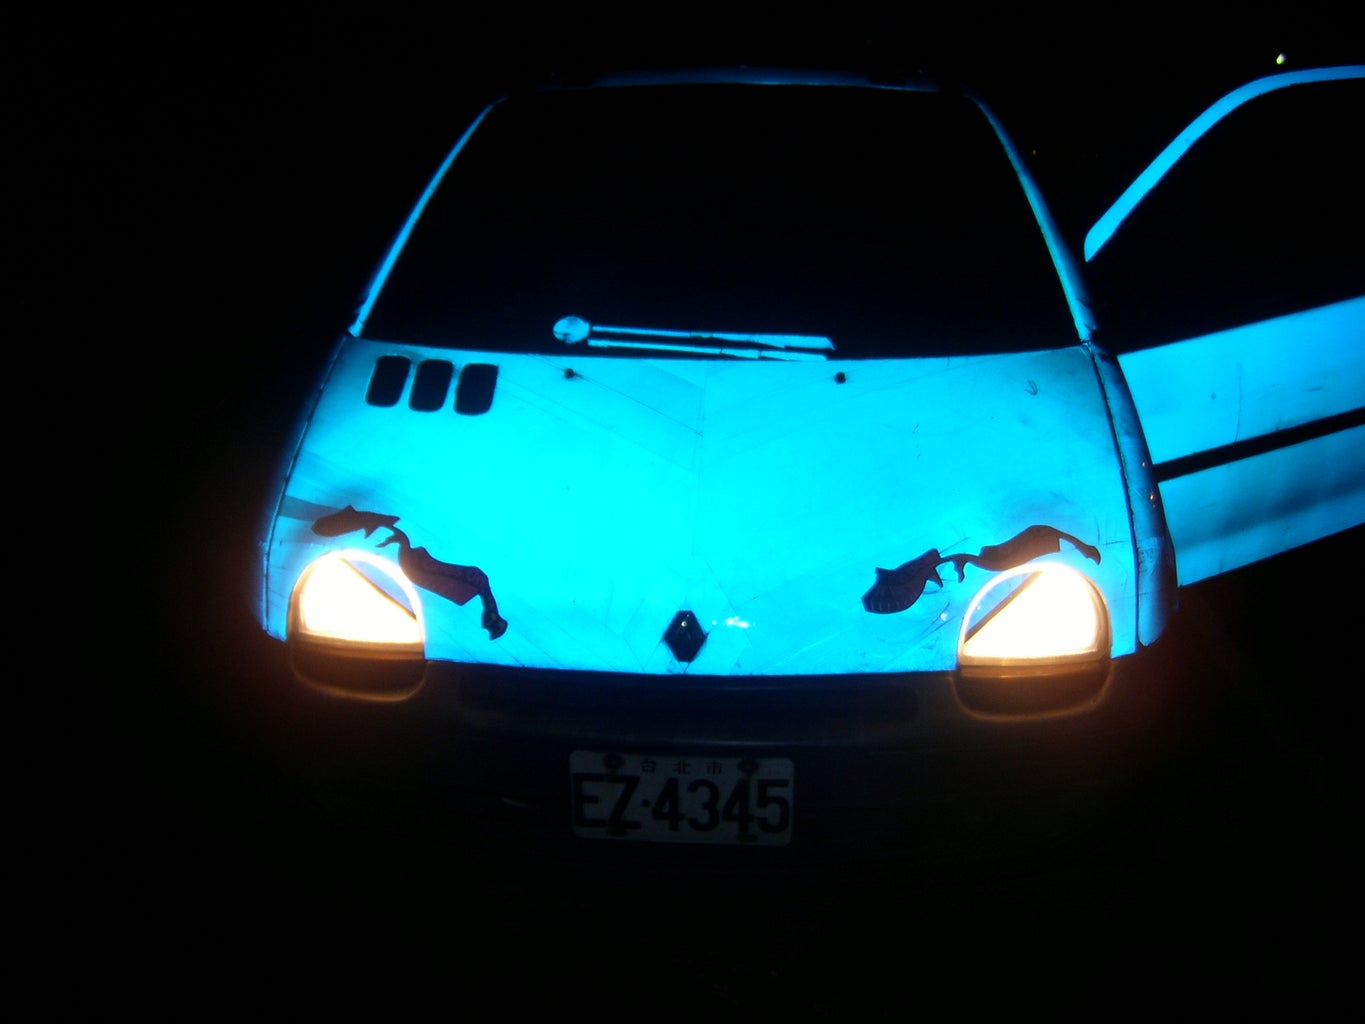 Retroreflective Material on Your Car Within 20 USD